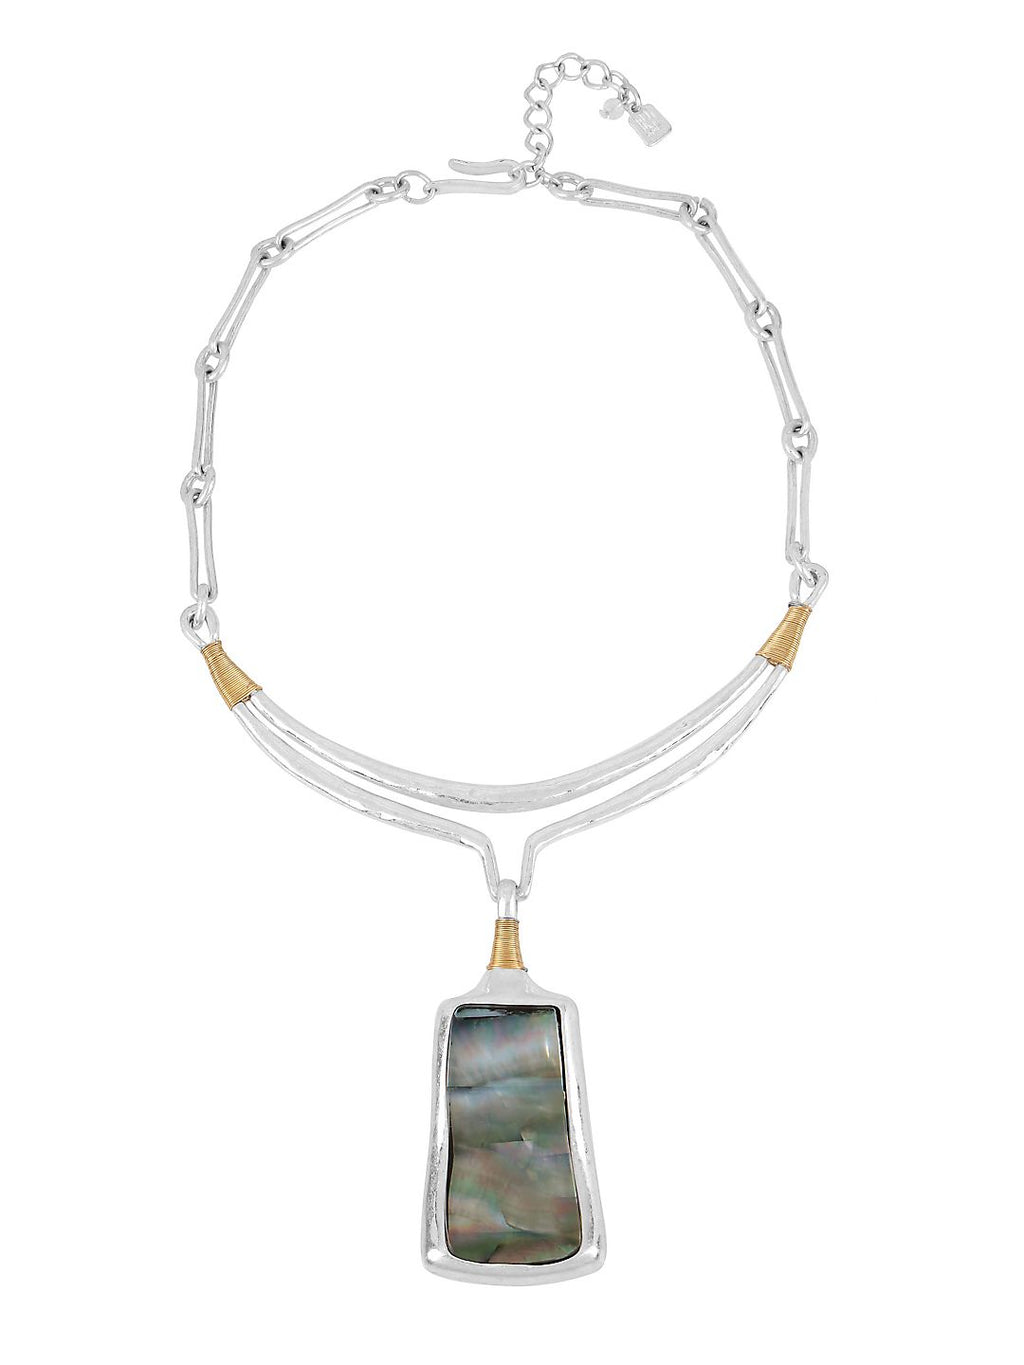 Riley Bold Moves Two-Tone Plated Sculptural Pendant Necklace